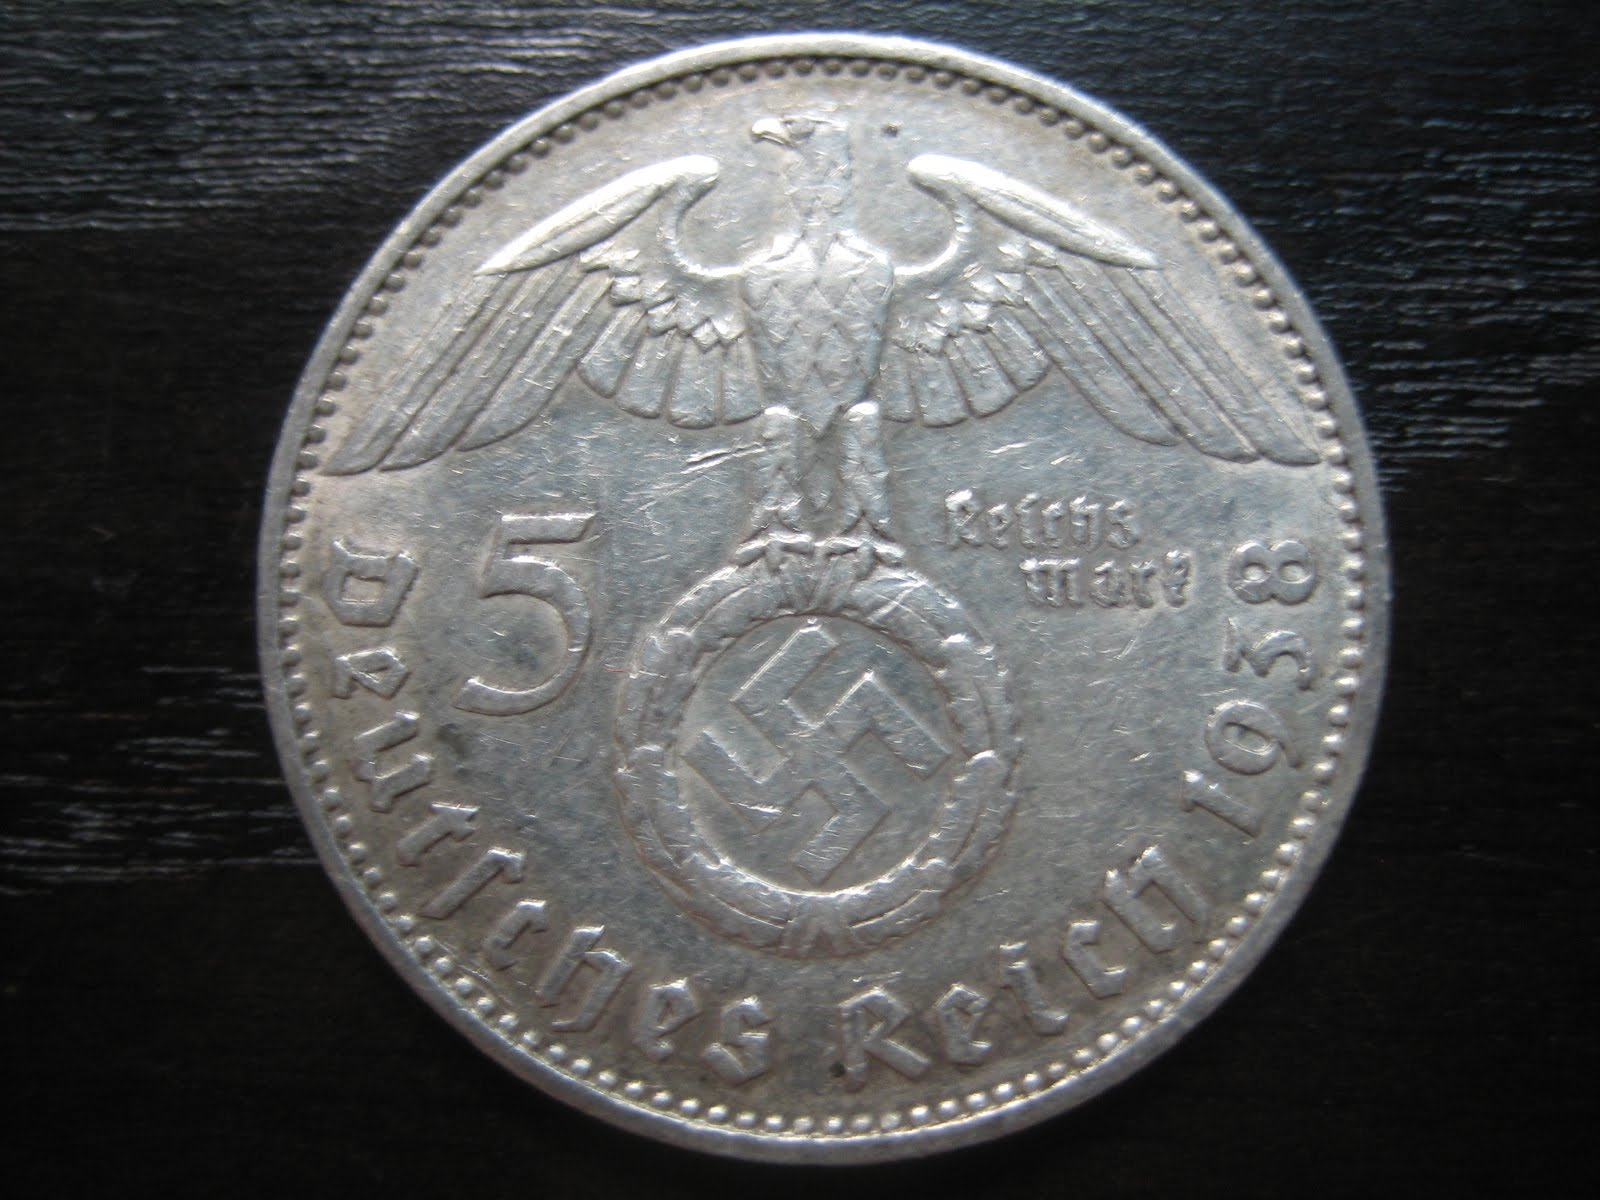 Numismatic Collection 1938 Third Reich Silver Reichmark